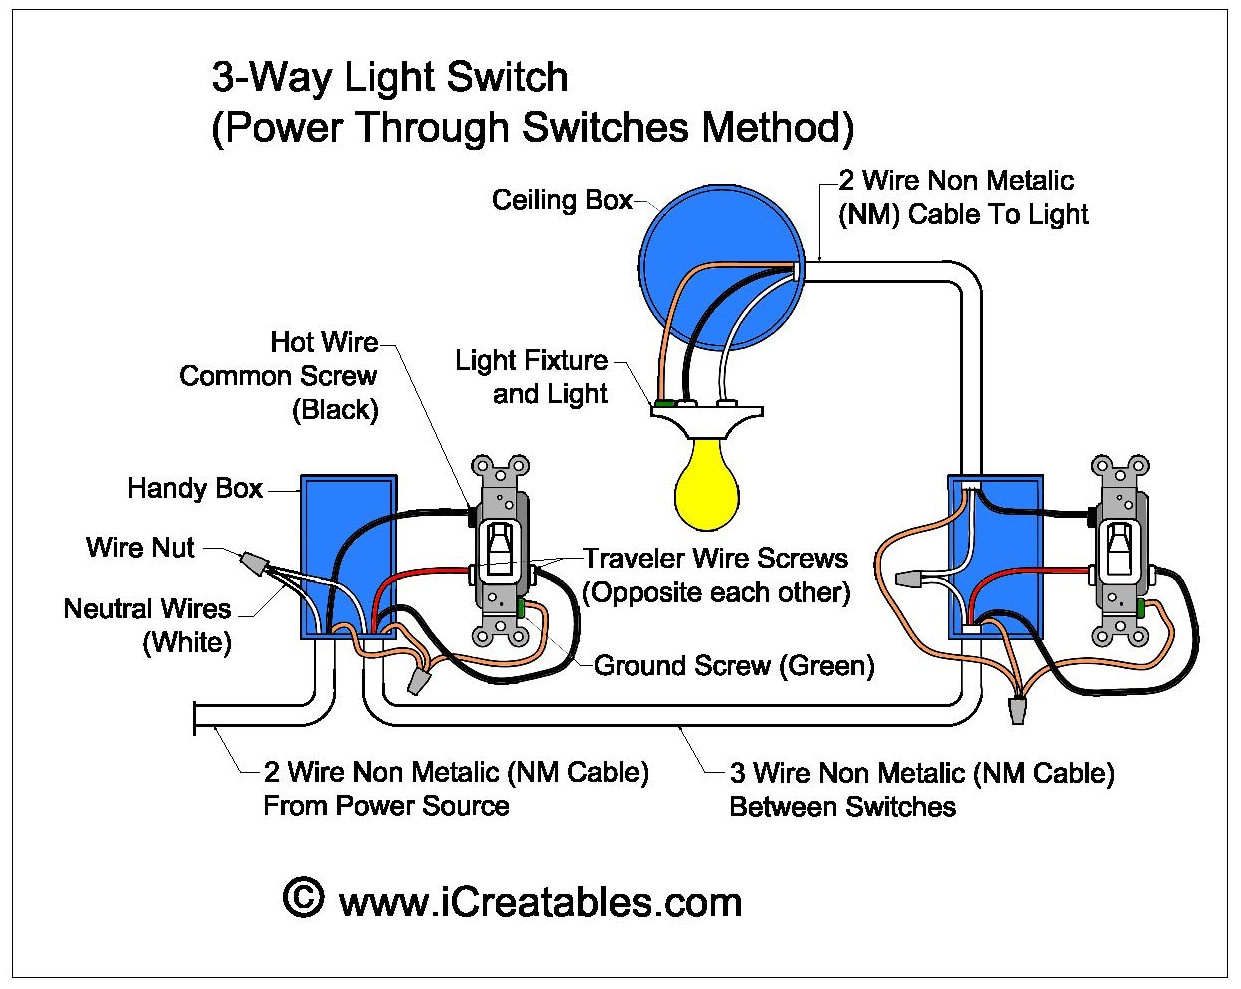 3 way lighting diagram democraciaejustica wire a three way switch icreatablescom asfbconference2016 Images